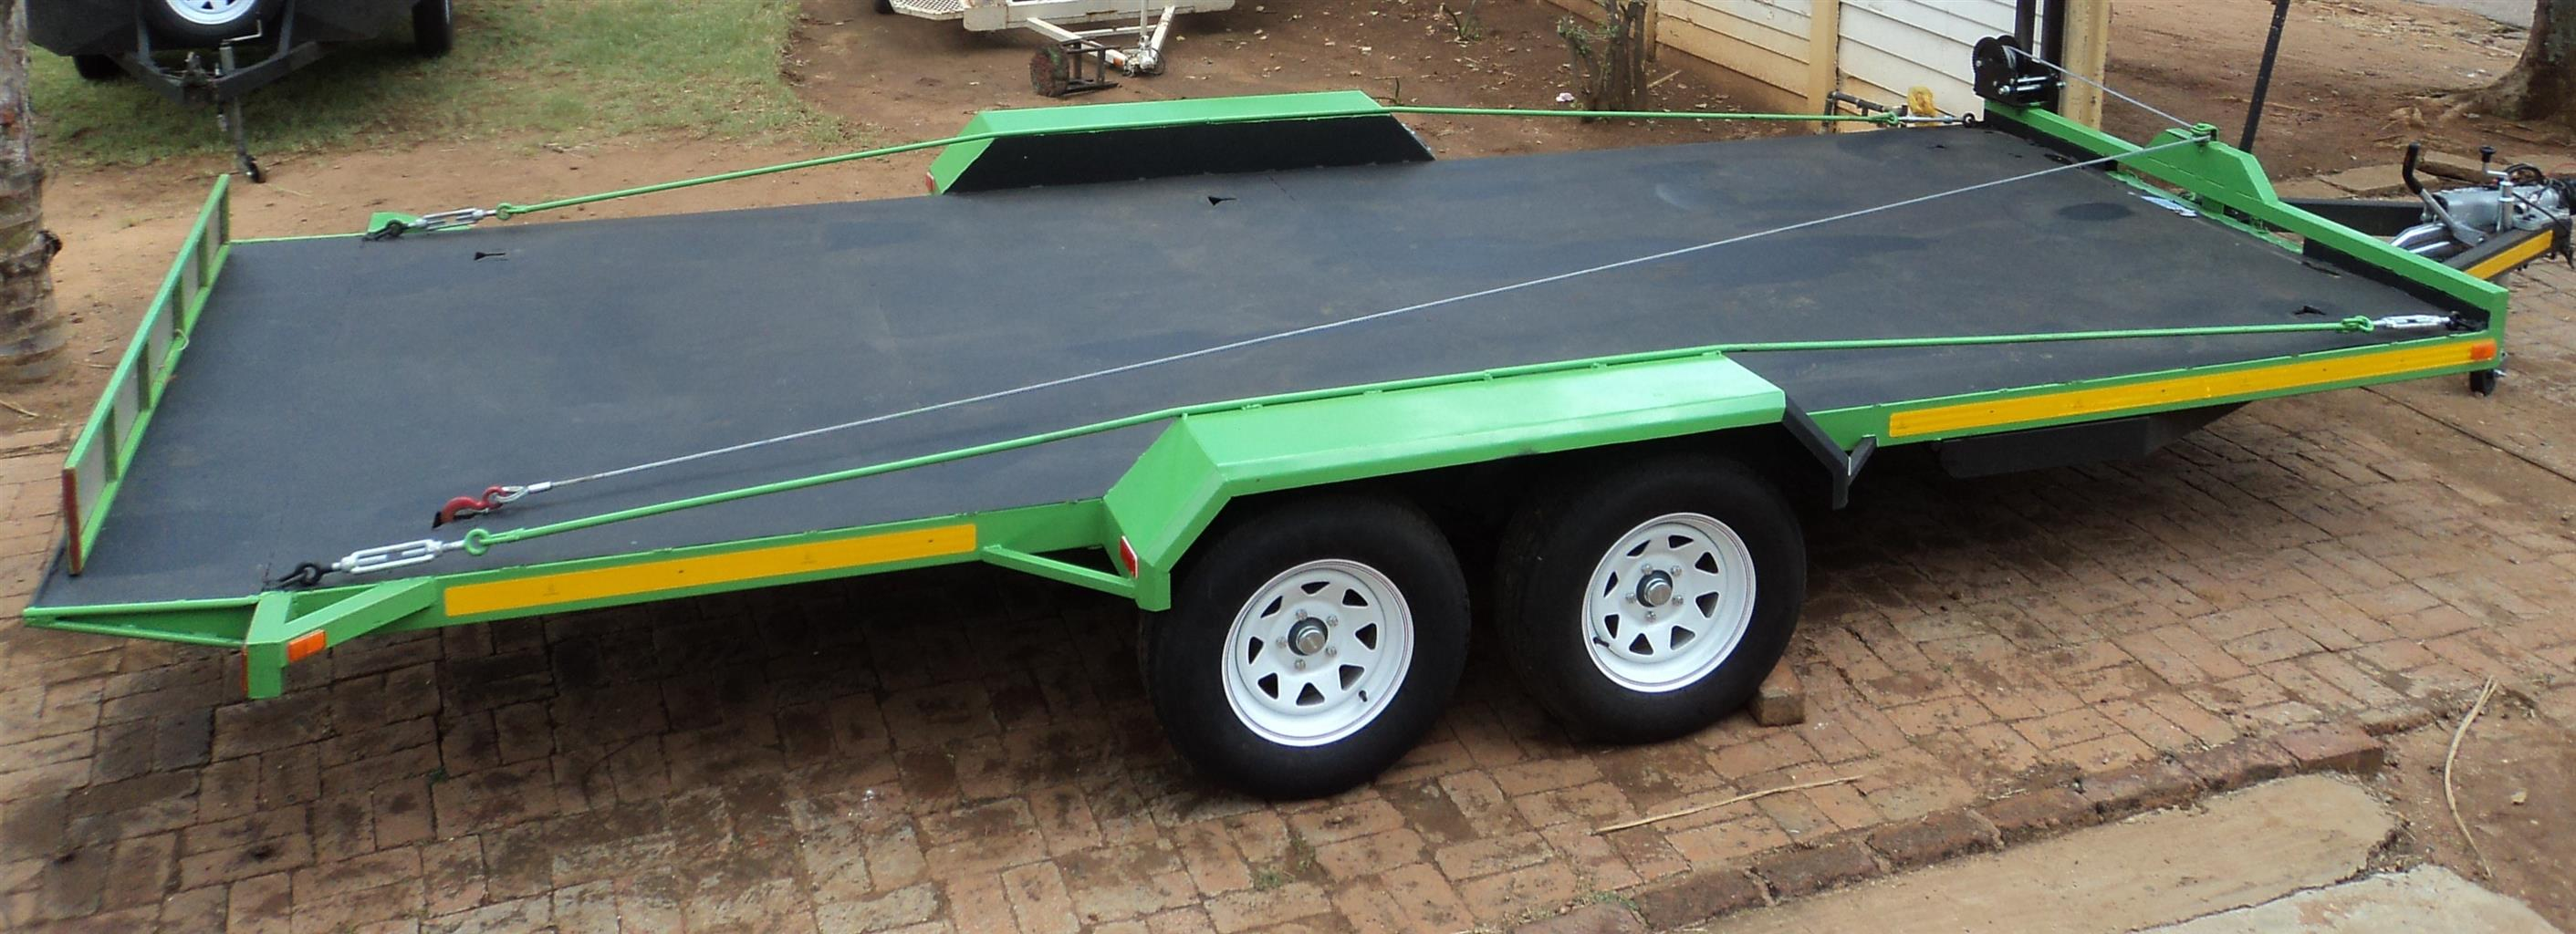 O. ROLL BACK CAR TRAILER. MR